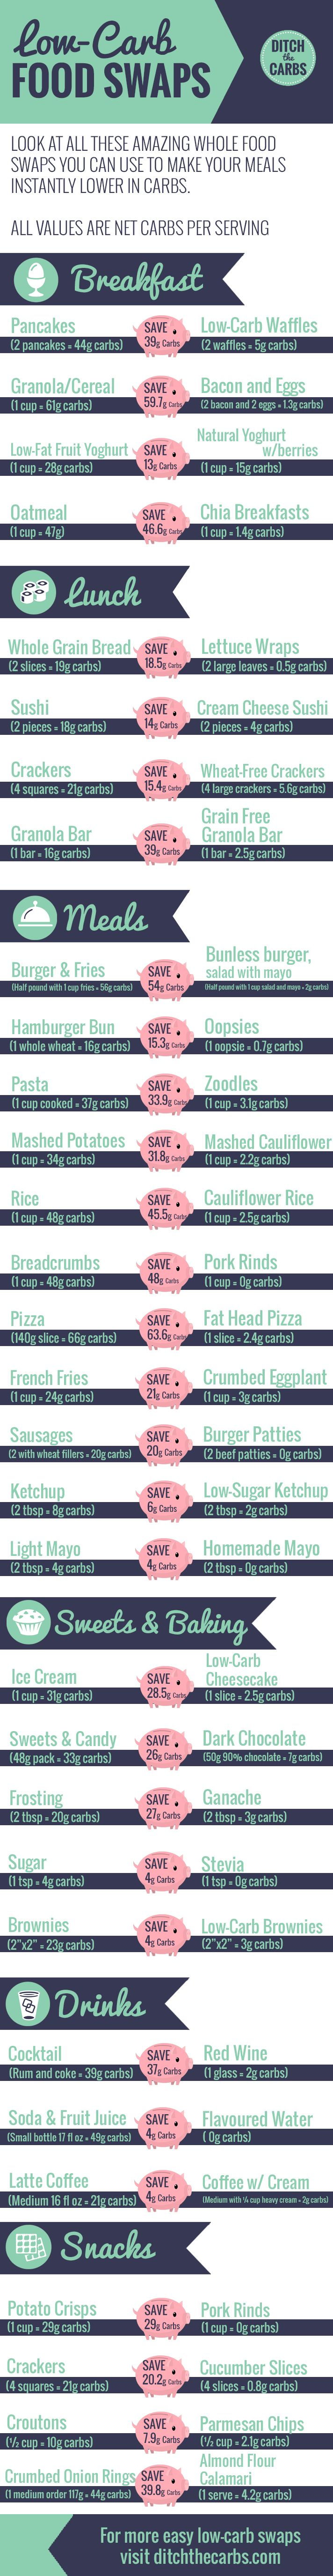 Check out these 31 easy low-carb swap and see al the carb savings you can make. This is perfect for beginners who want easy low-carb swaps and low-carb keto recipes | ditchthecarbs,.com via @ditchthecarbs